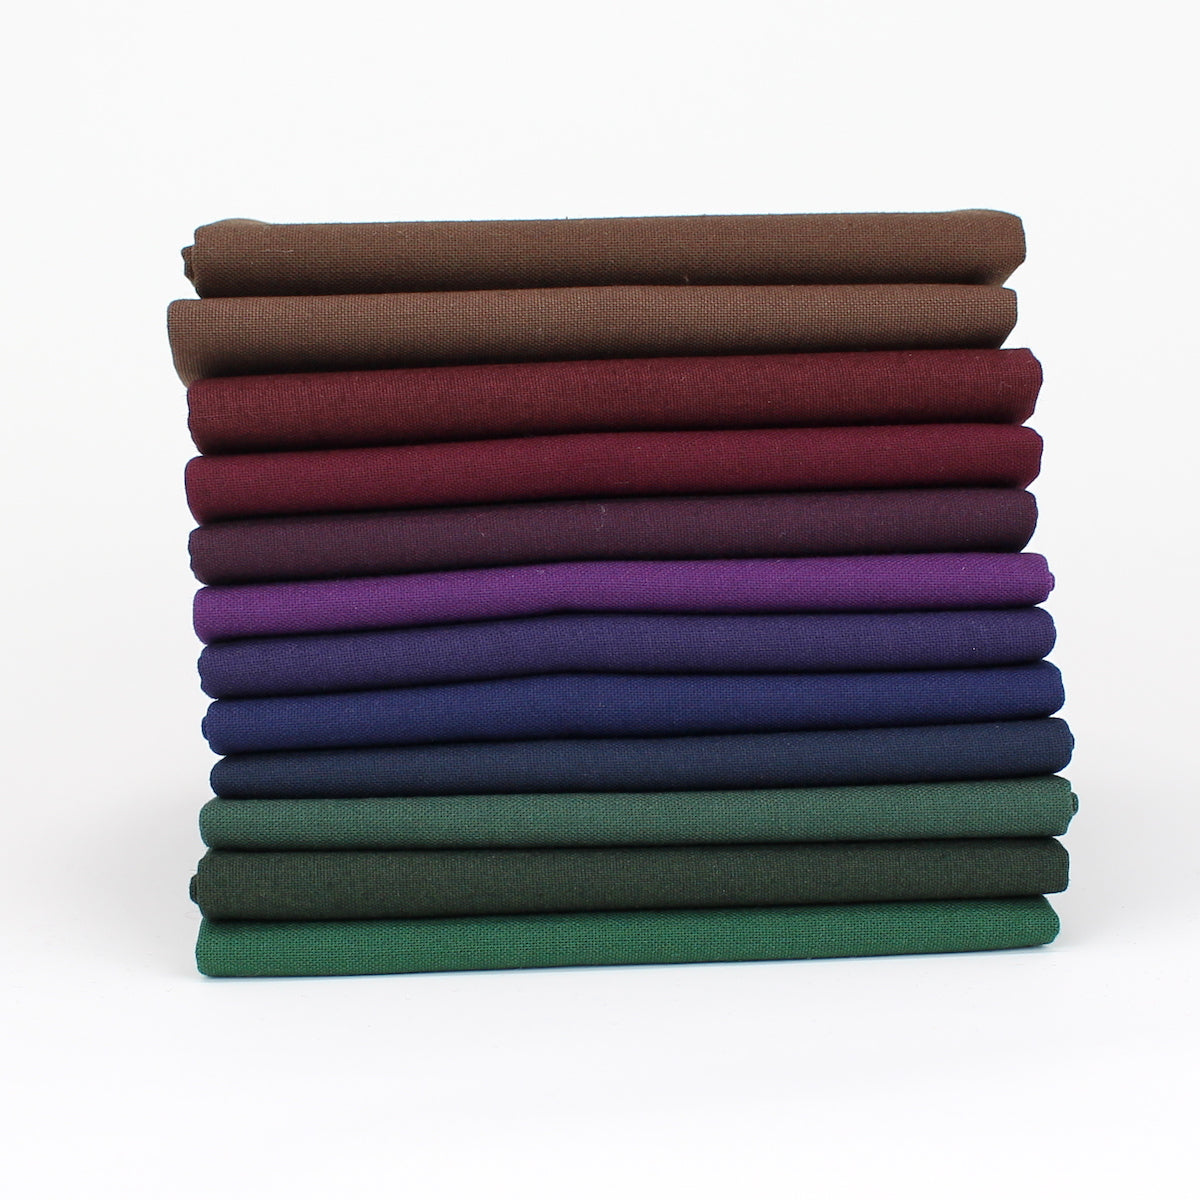 Rainbow Value Nine - 12 Fat Quarter Bundle - Kona Cotton